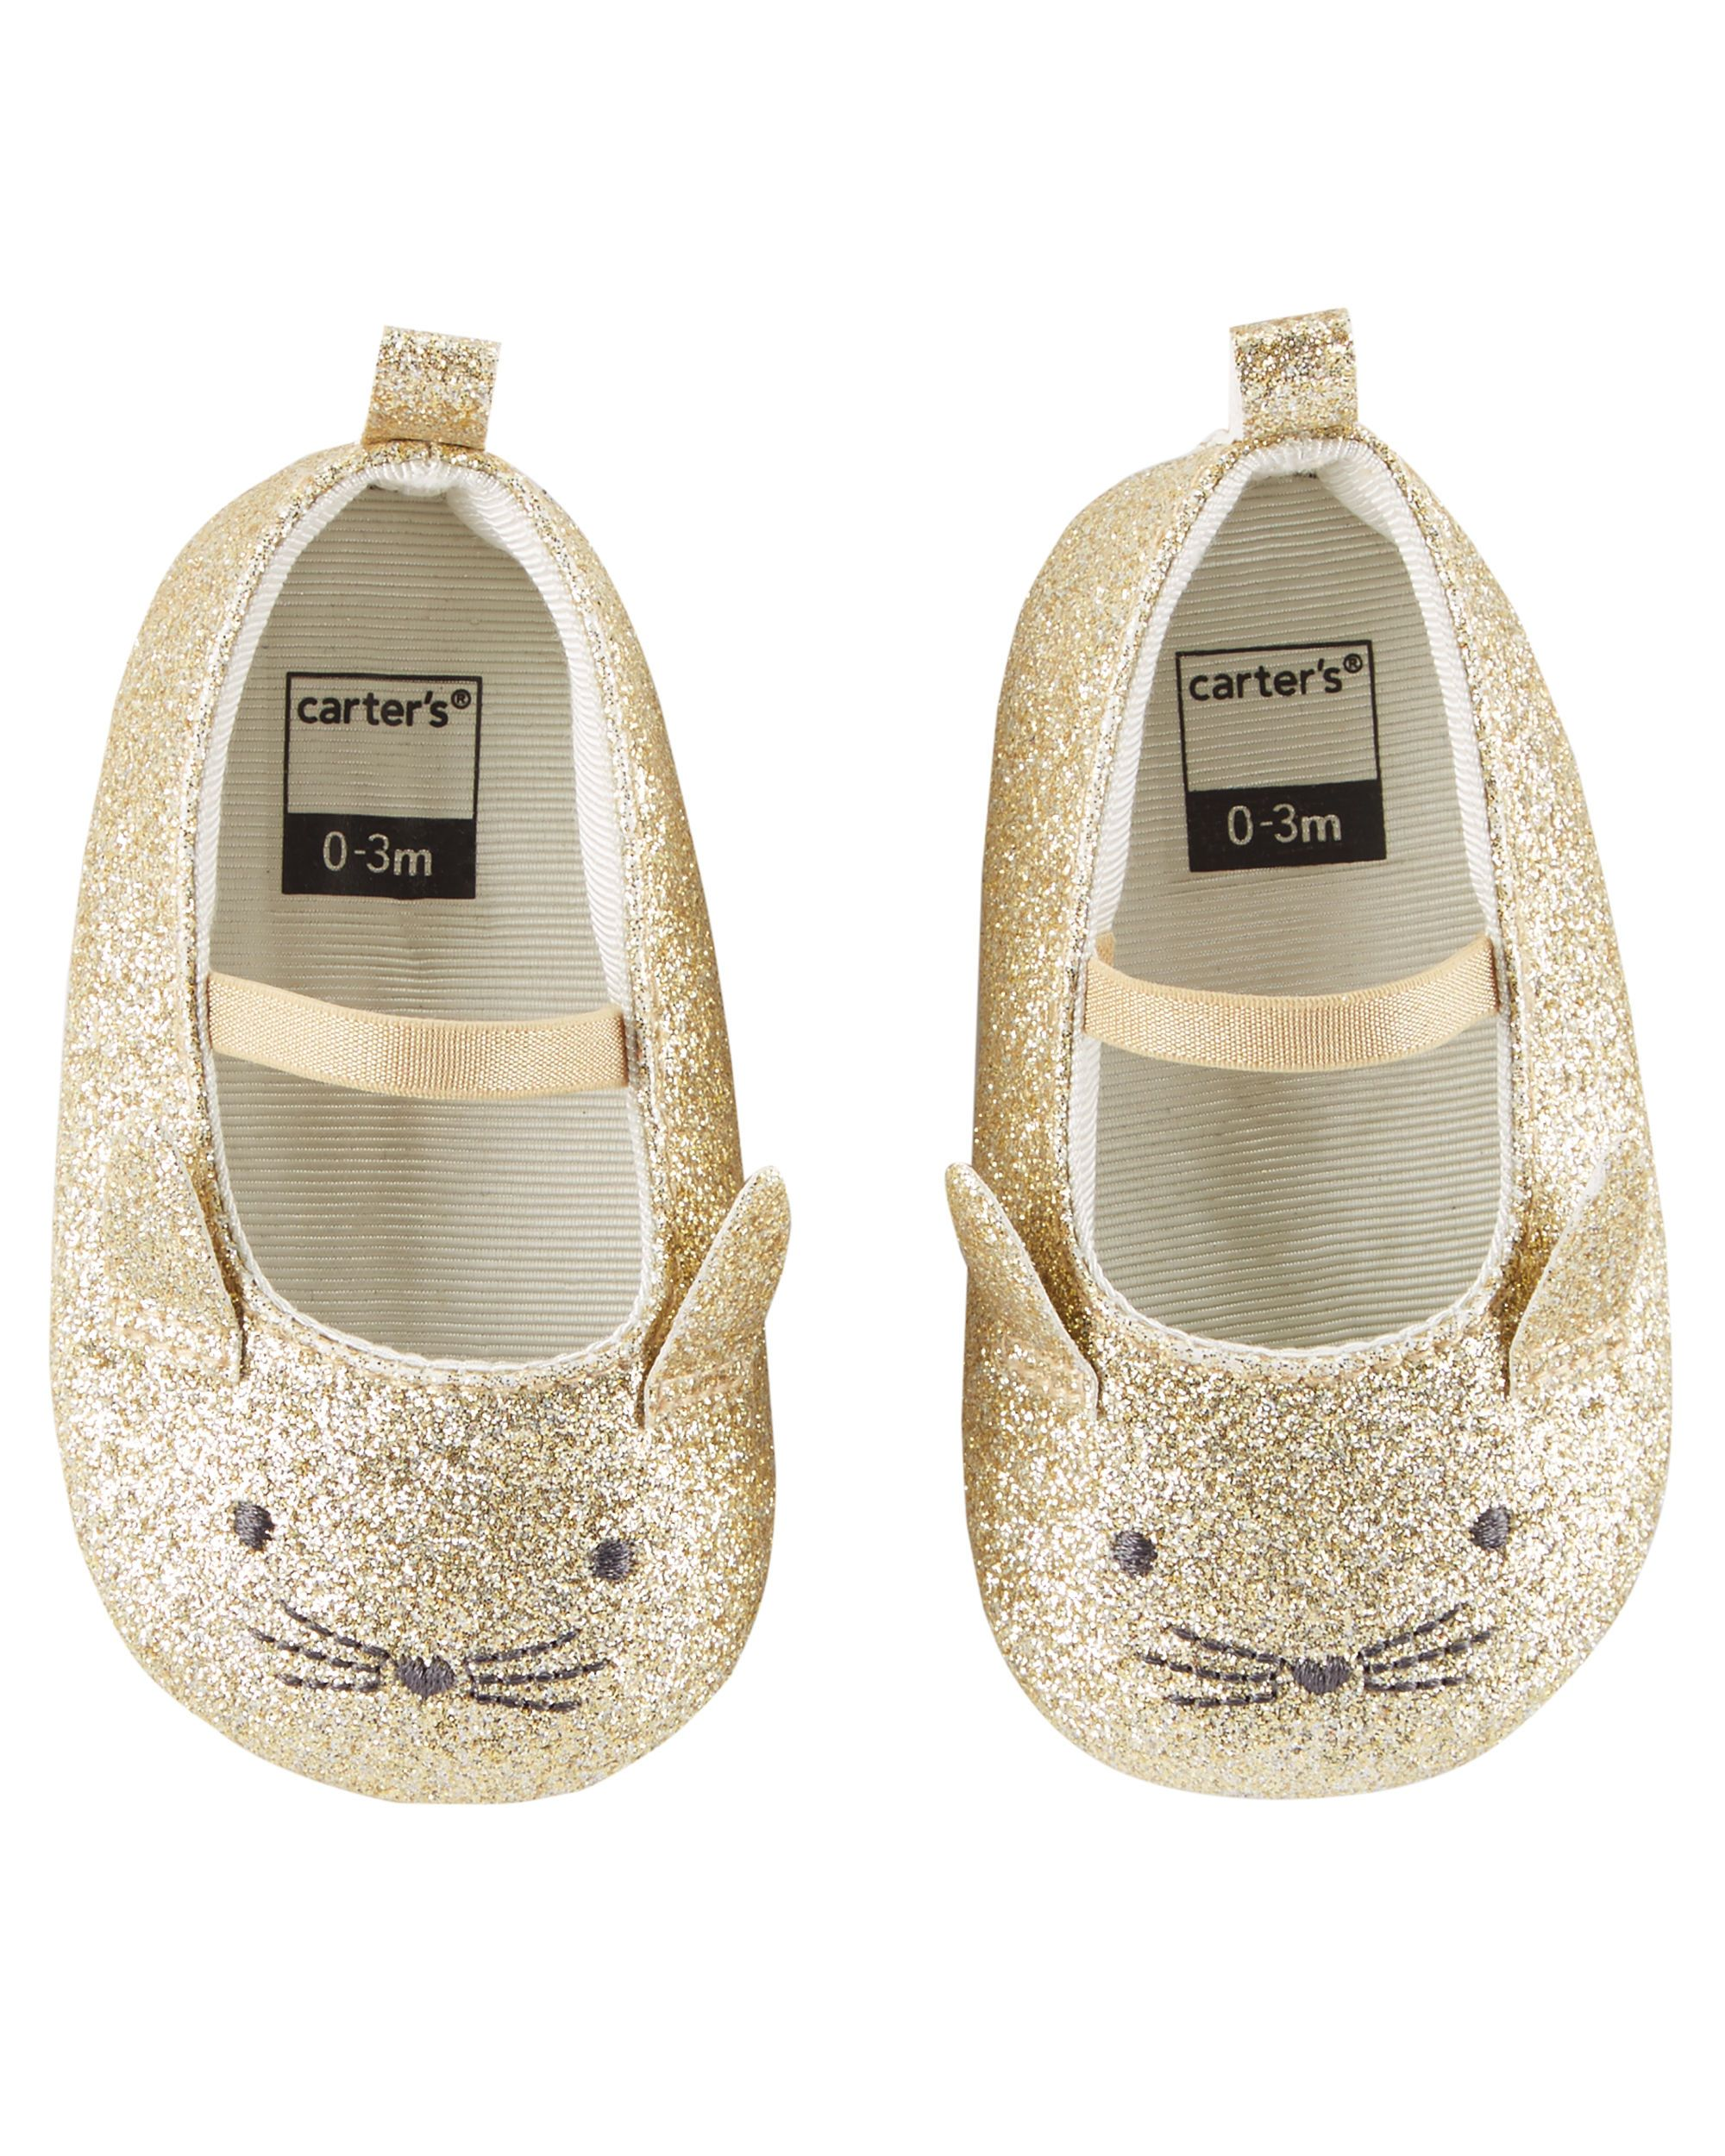 5a9a263ea487 Baby Girl Carter s Glitter Mary Jane Crib Shoes